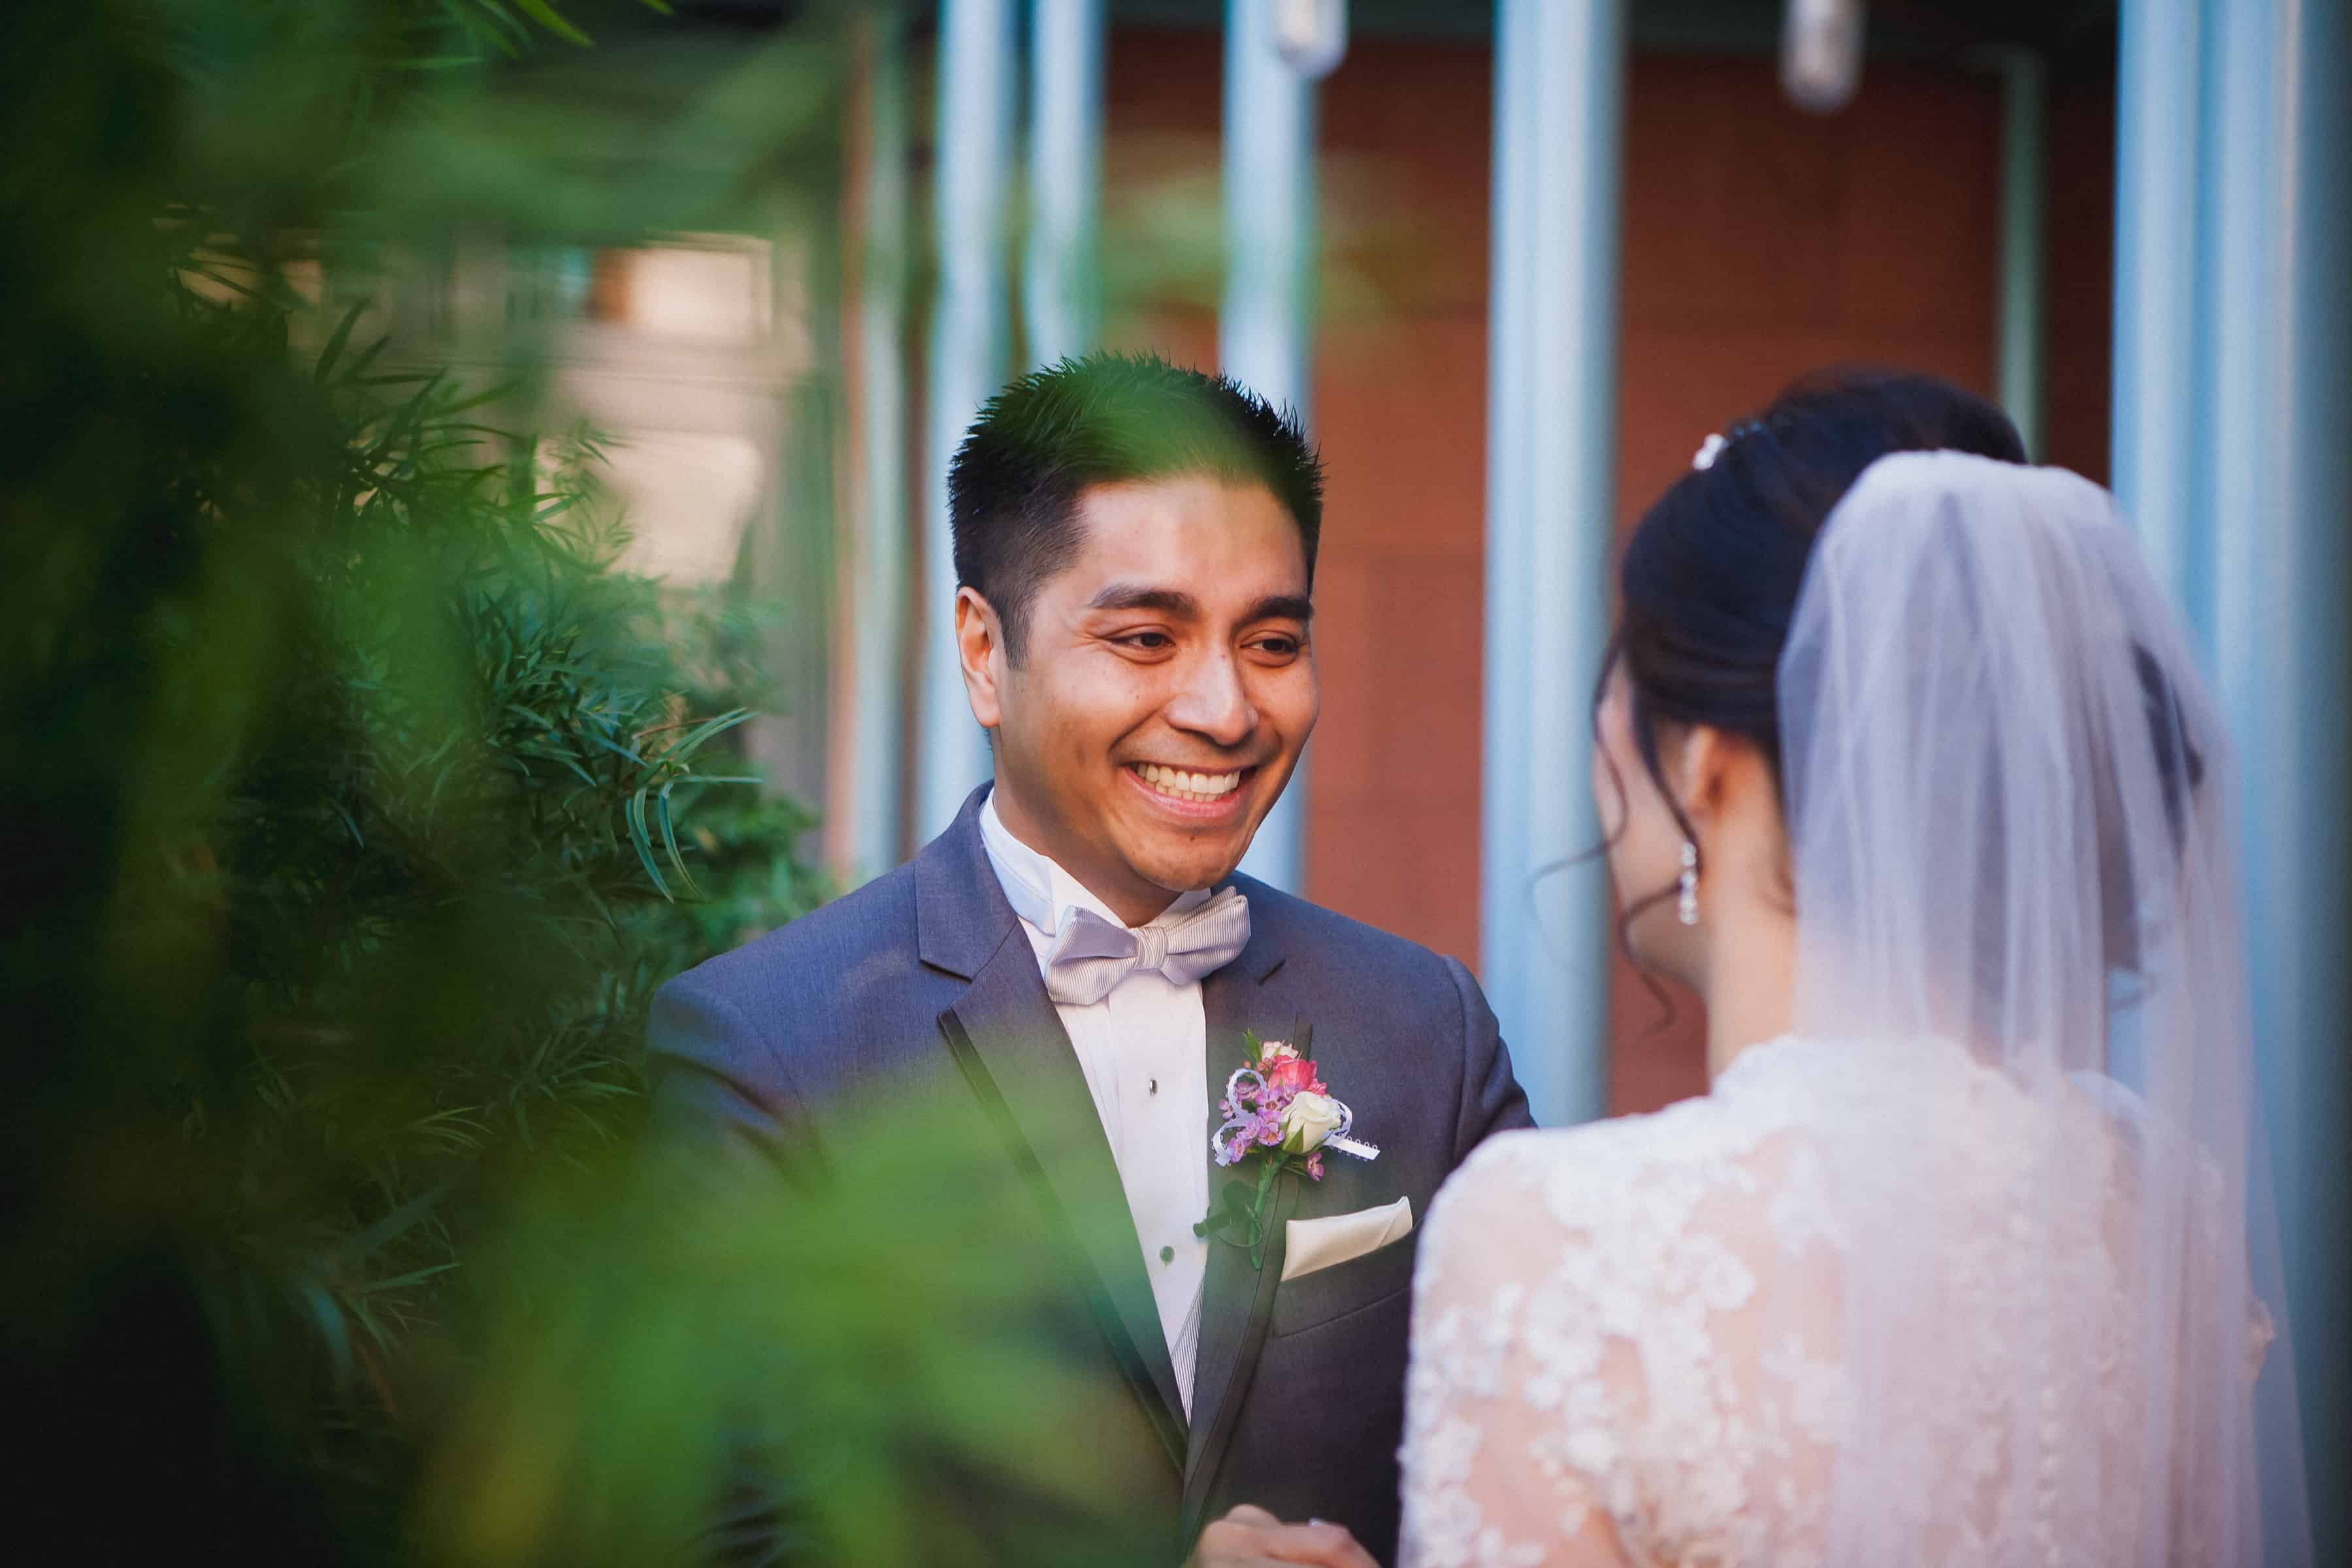 groom smiles as he turns around to see the bride for the first time during the wedding first look